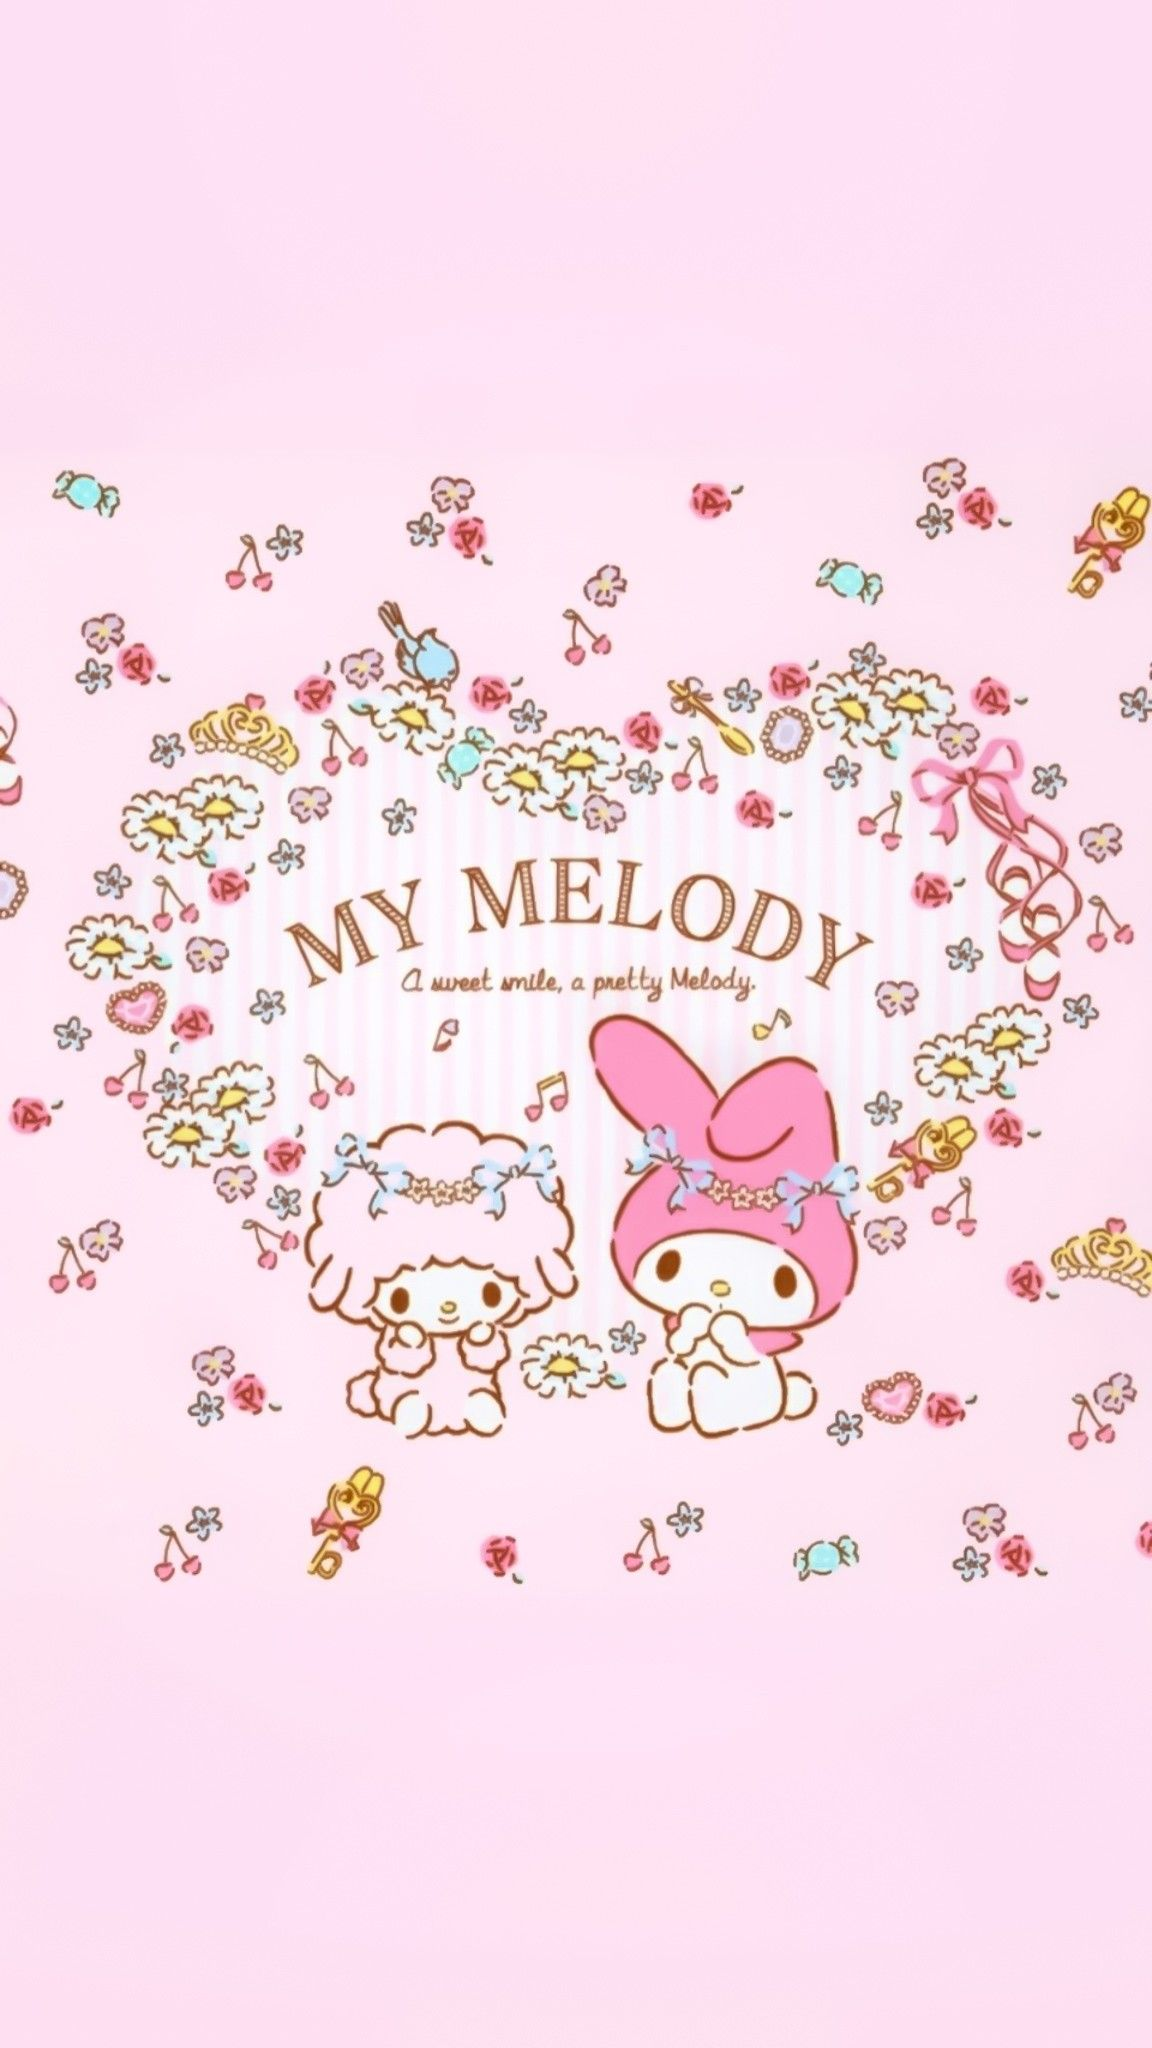 Pin By Sam On Wallpapers In 2020 My Melody Sanrio Wallpaper